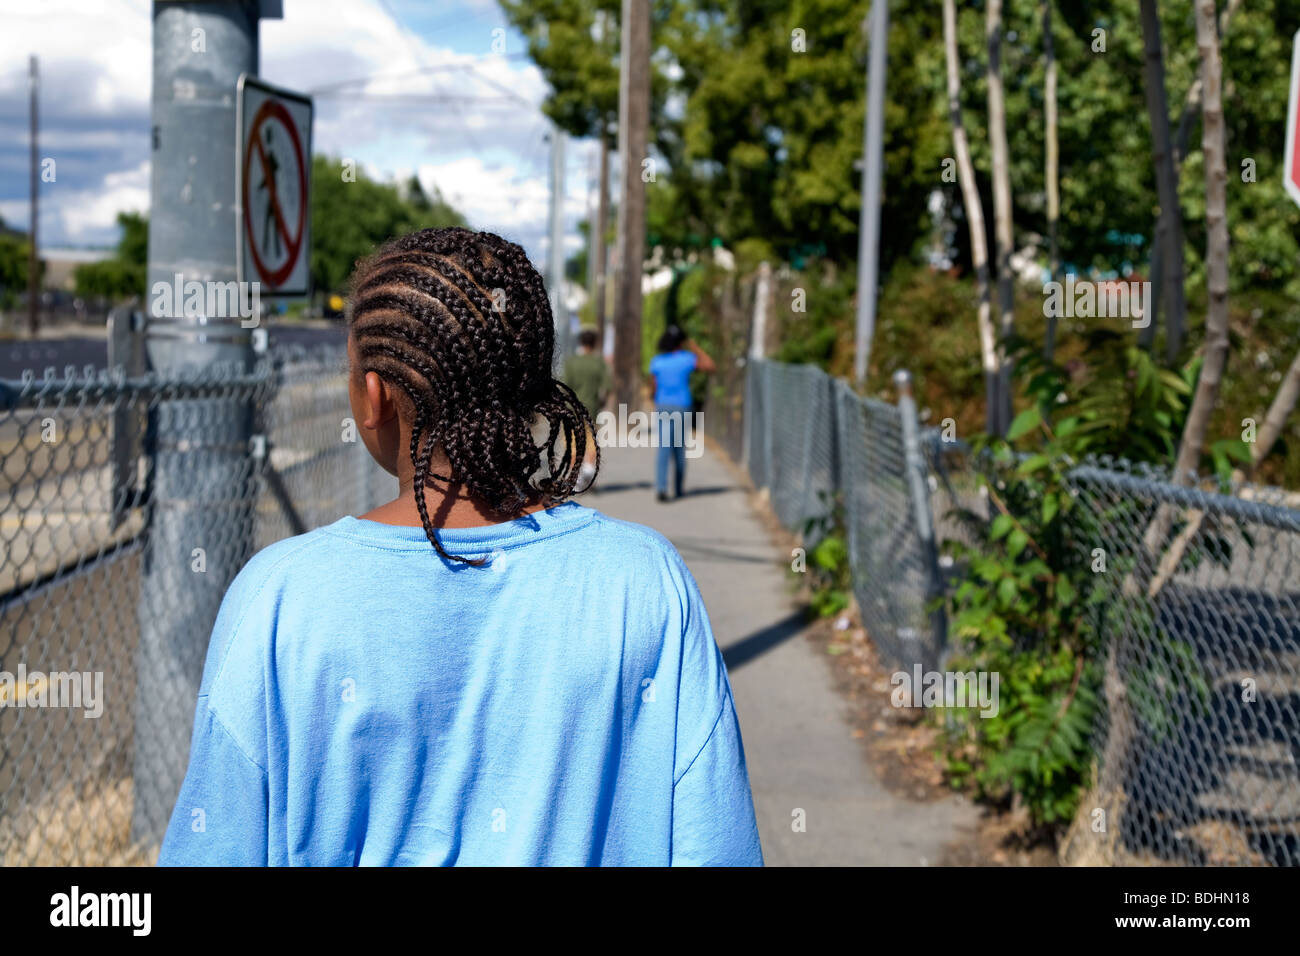 Selena Pina, a homeless mother of four, takes a walk in the afternoon with her children in Sacramento, CA. Stock Photo